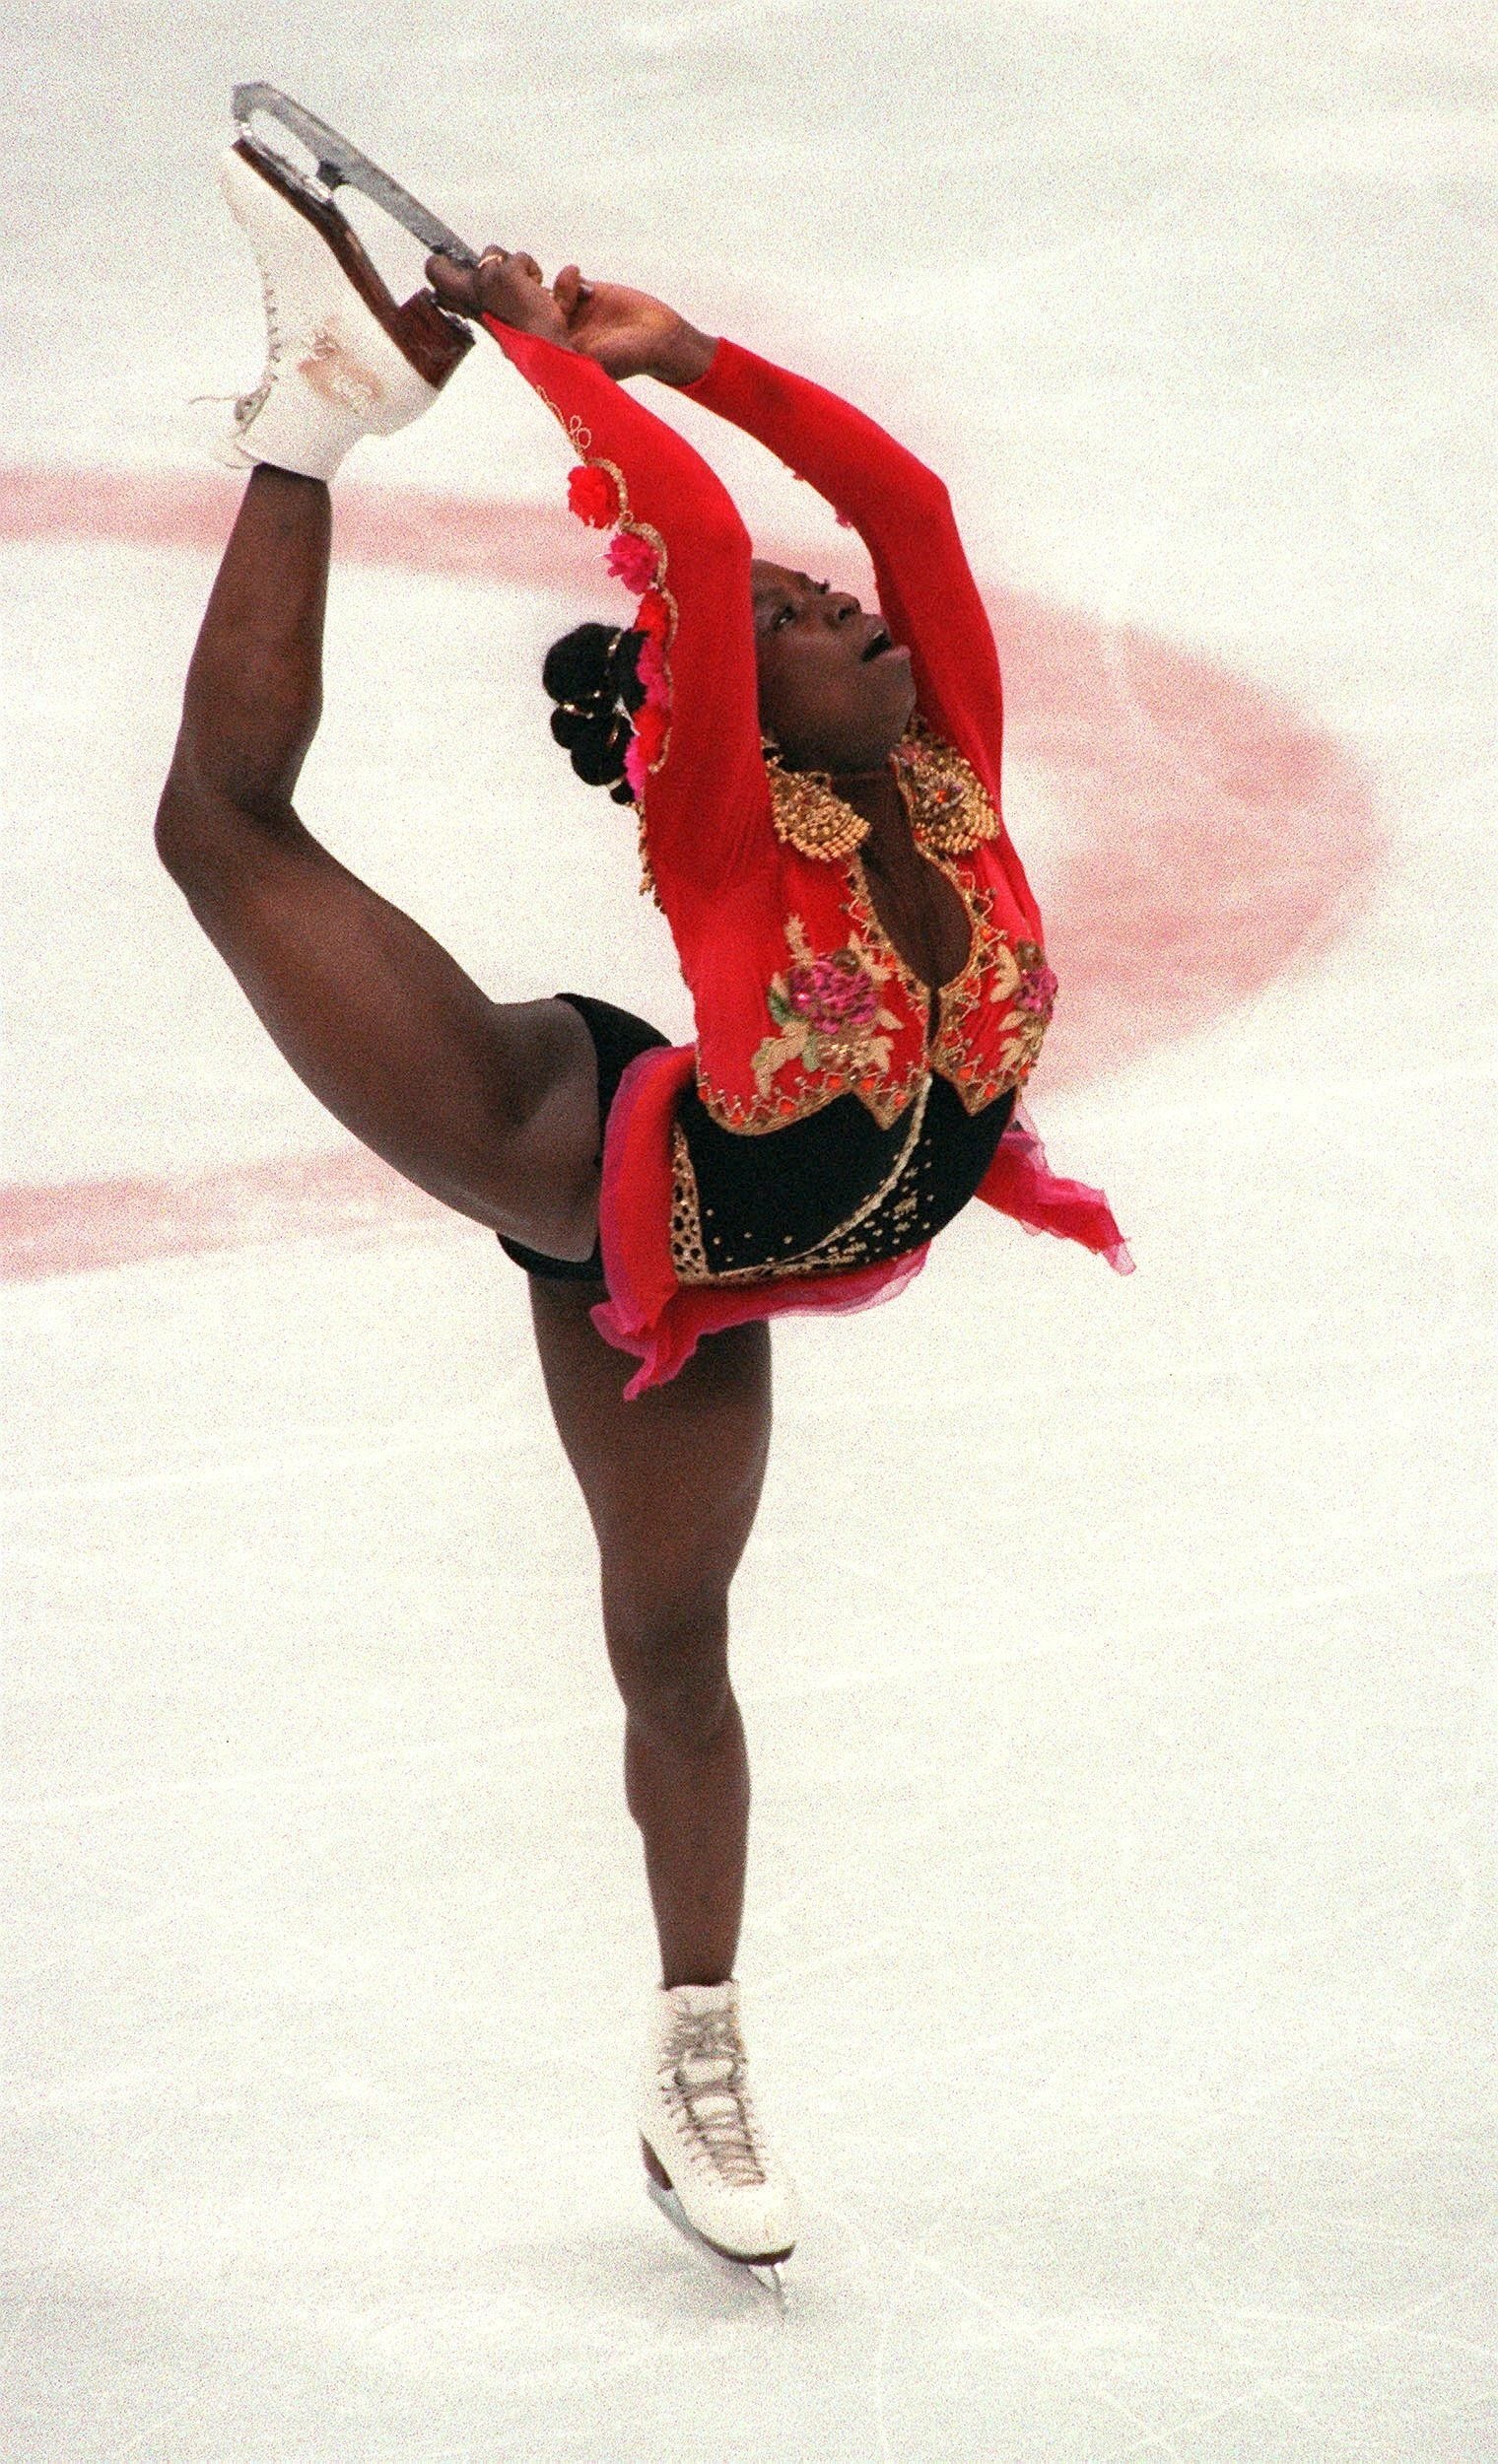 The French skater performingher free program during the Winter Olympics Feb. 21, 1992, in Albertville. Bonaly finished